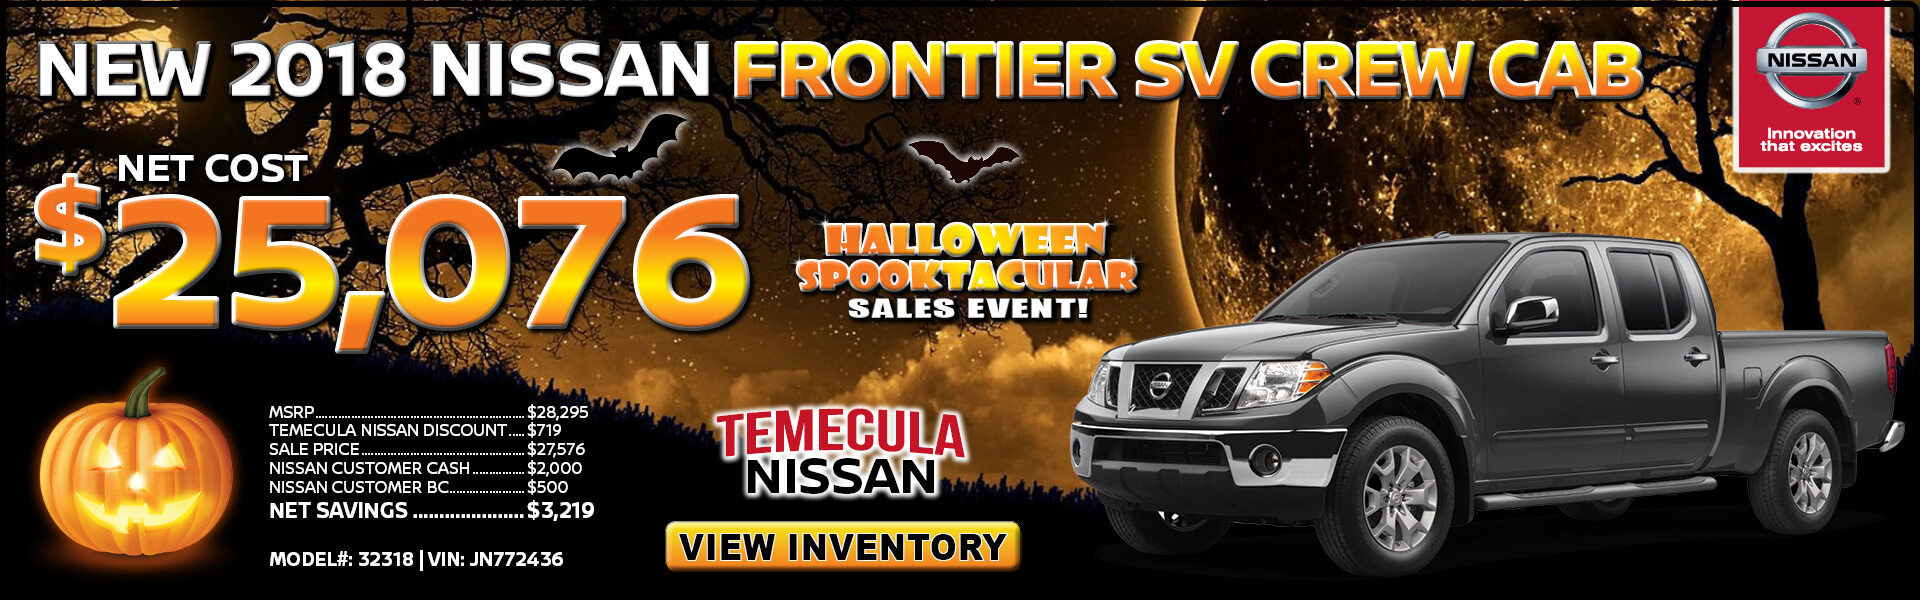 Nissan Frontier $25,076 Purchase